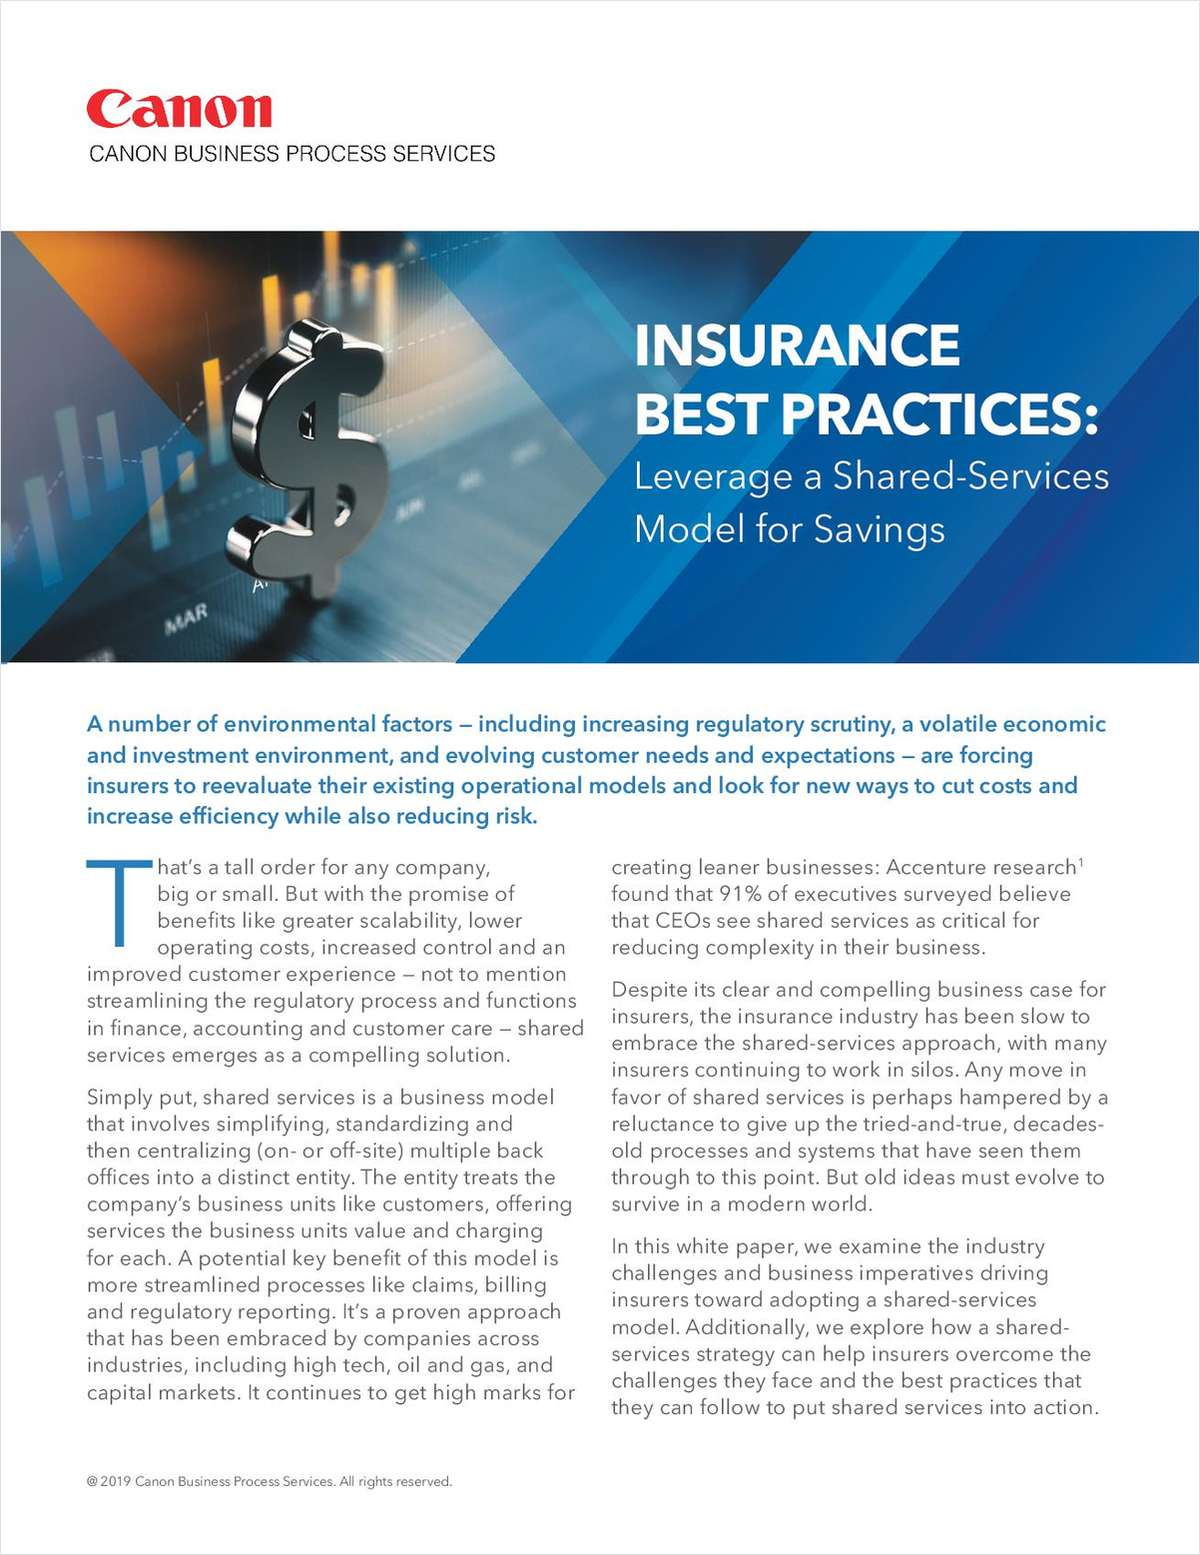 Insurance Best Practices: Leverage a Shared-Services Model for Savings